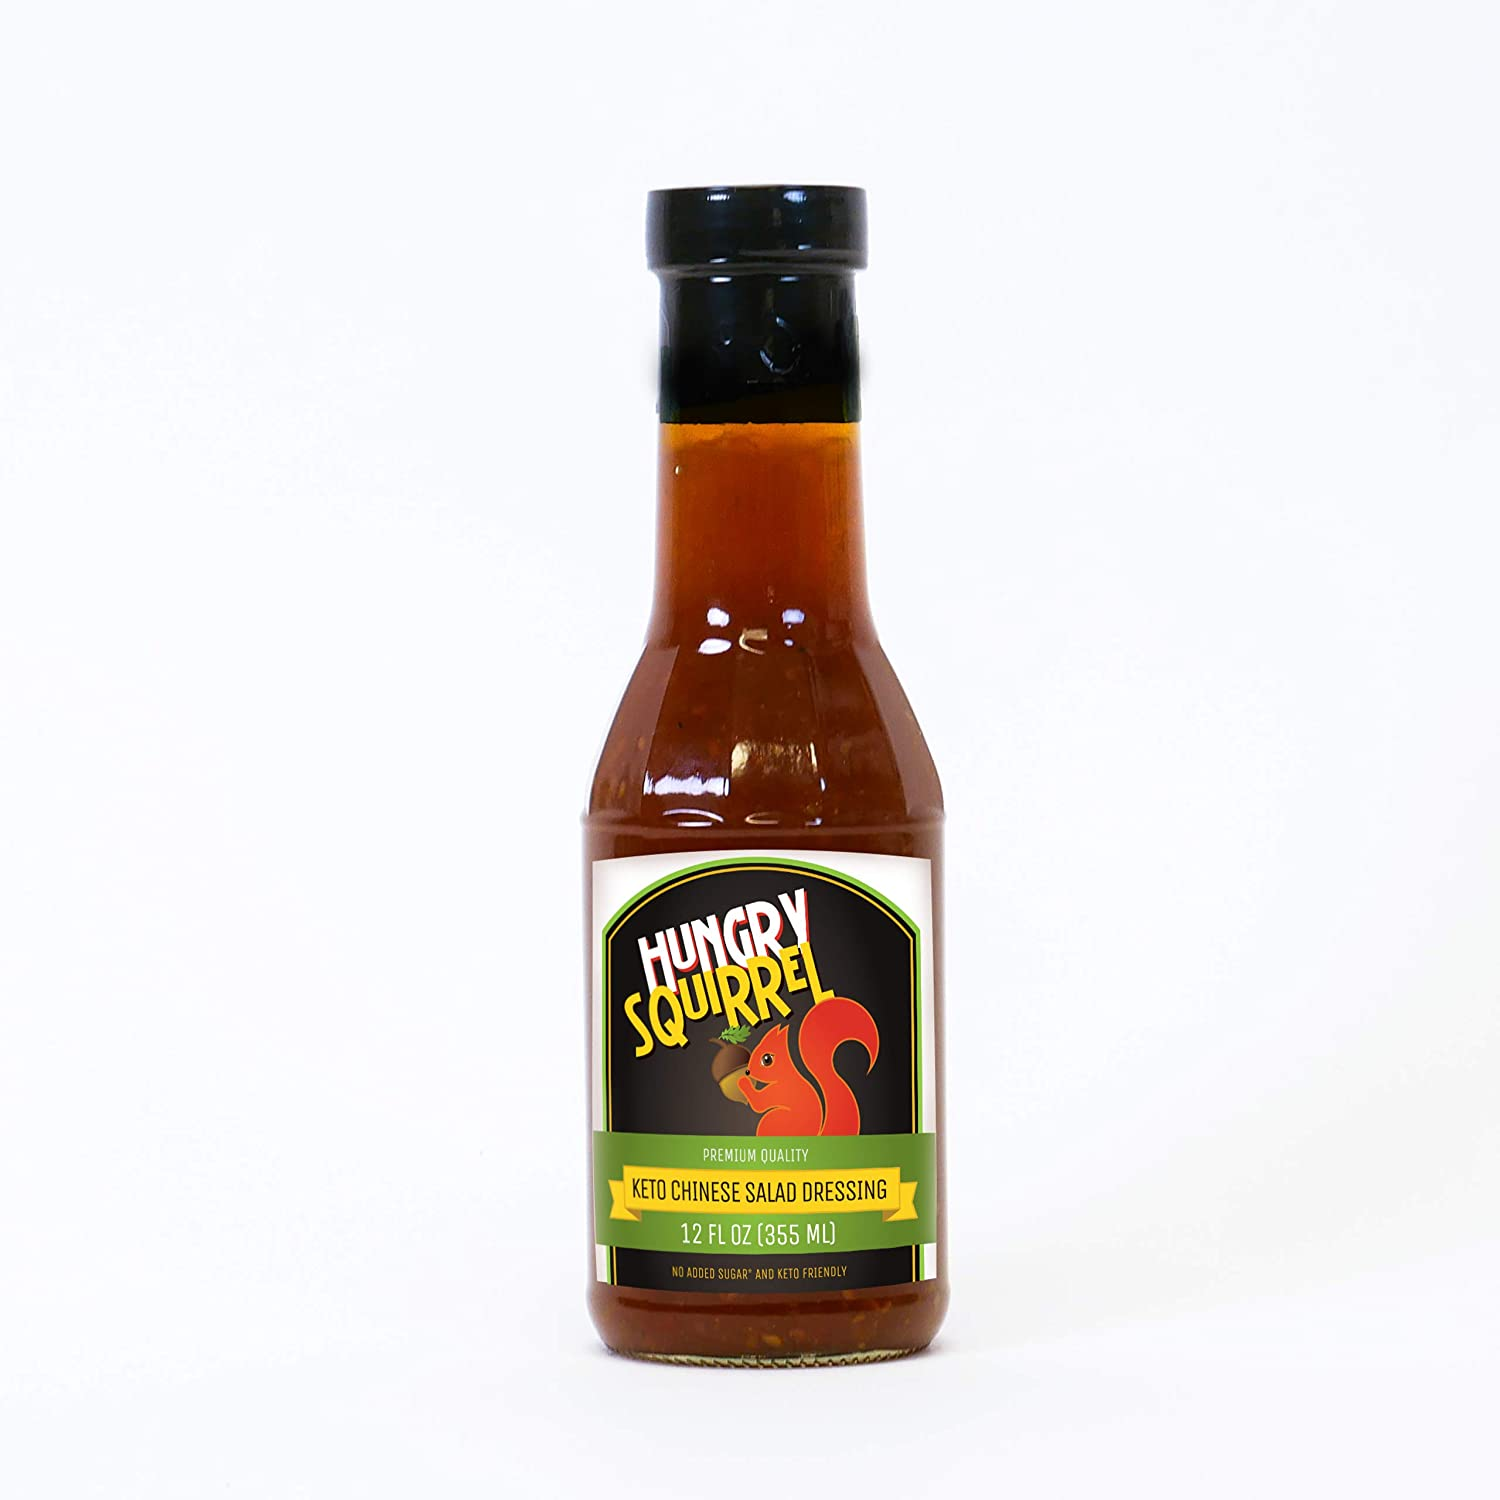 Hungry Squirrel - Keto Chinese Salad Dressing No Added Sugar Paleo Friendly, Natural Taste with Real Fruit Gourmet Sauce Perfect Choice for Salad Mix, Great Value with Delicious Taste, 12 Oz